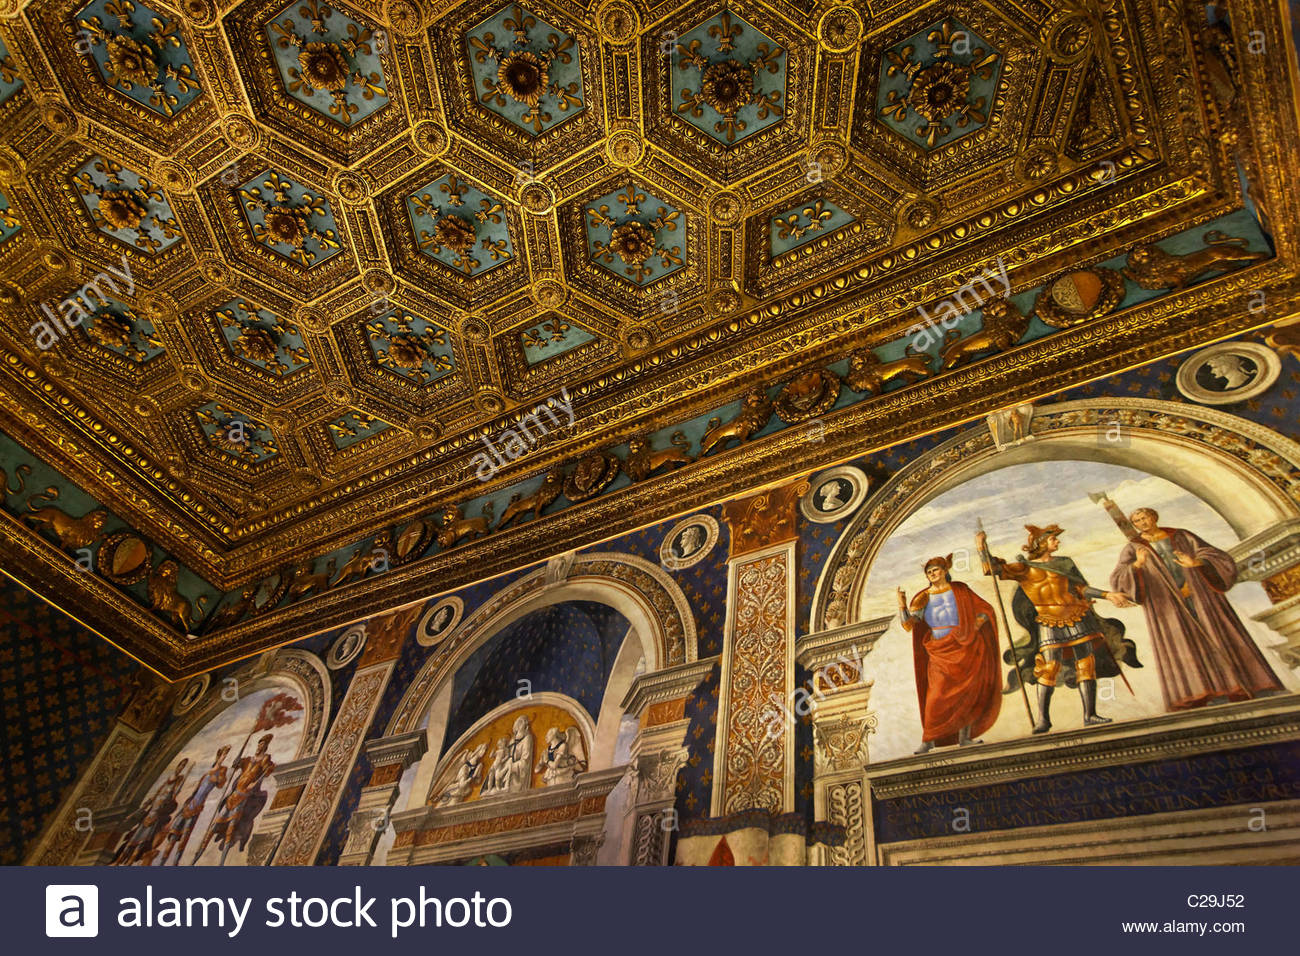 Ceiling panels of gold laminated fleur de lis in the Palazzo Vecchio. - Stock Image